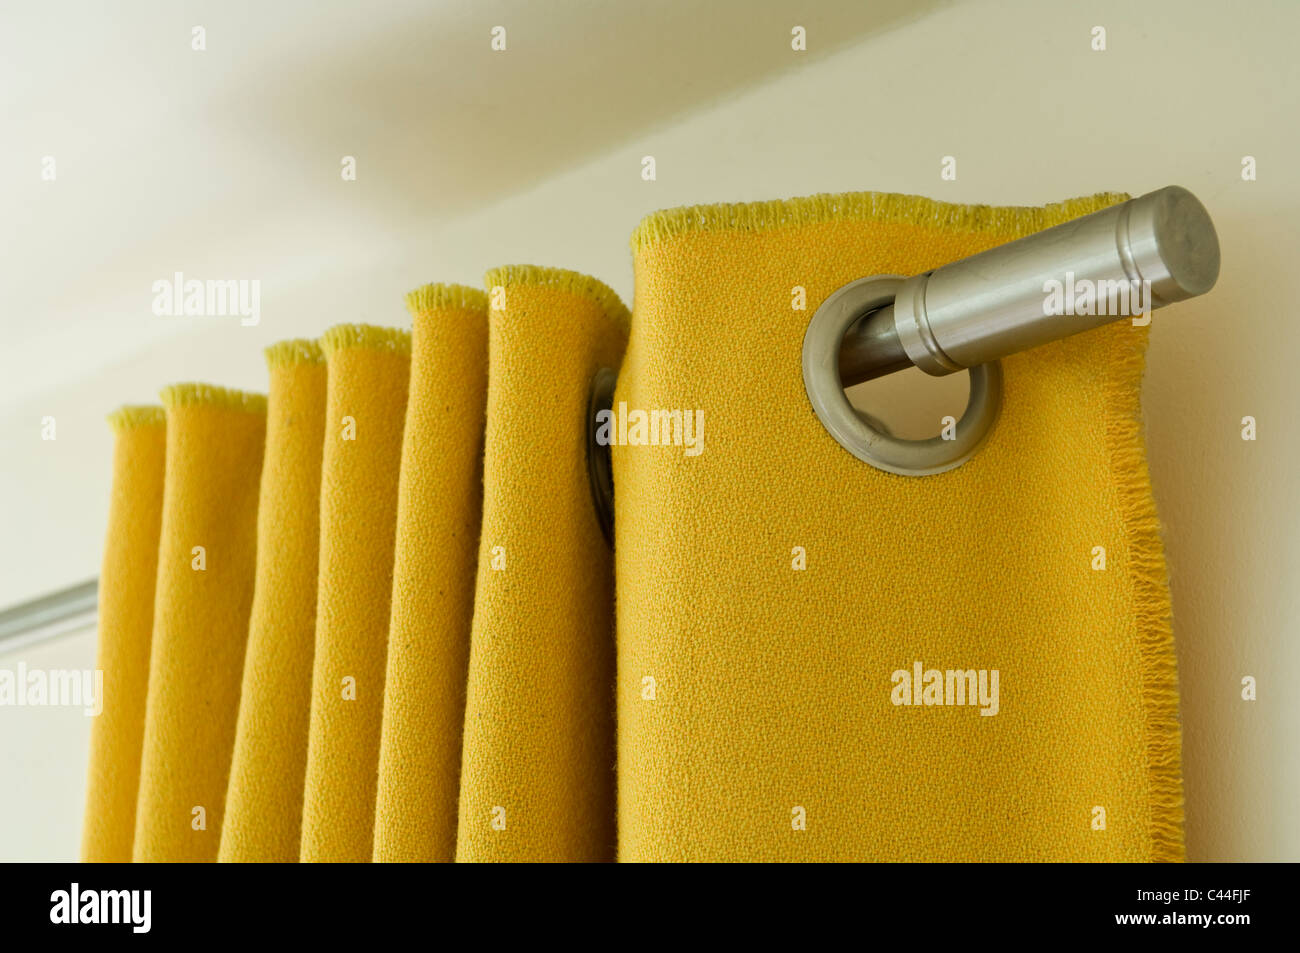 yellow curtain with eyelets hooked on to a stainless steel curtain pole - Stock Image